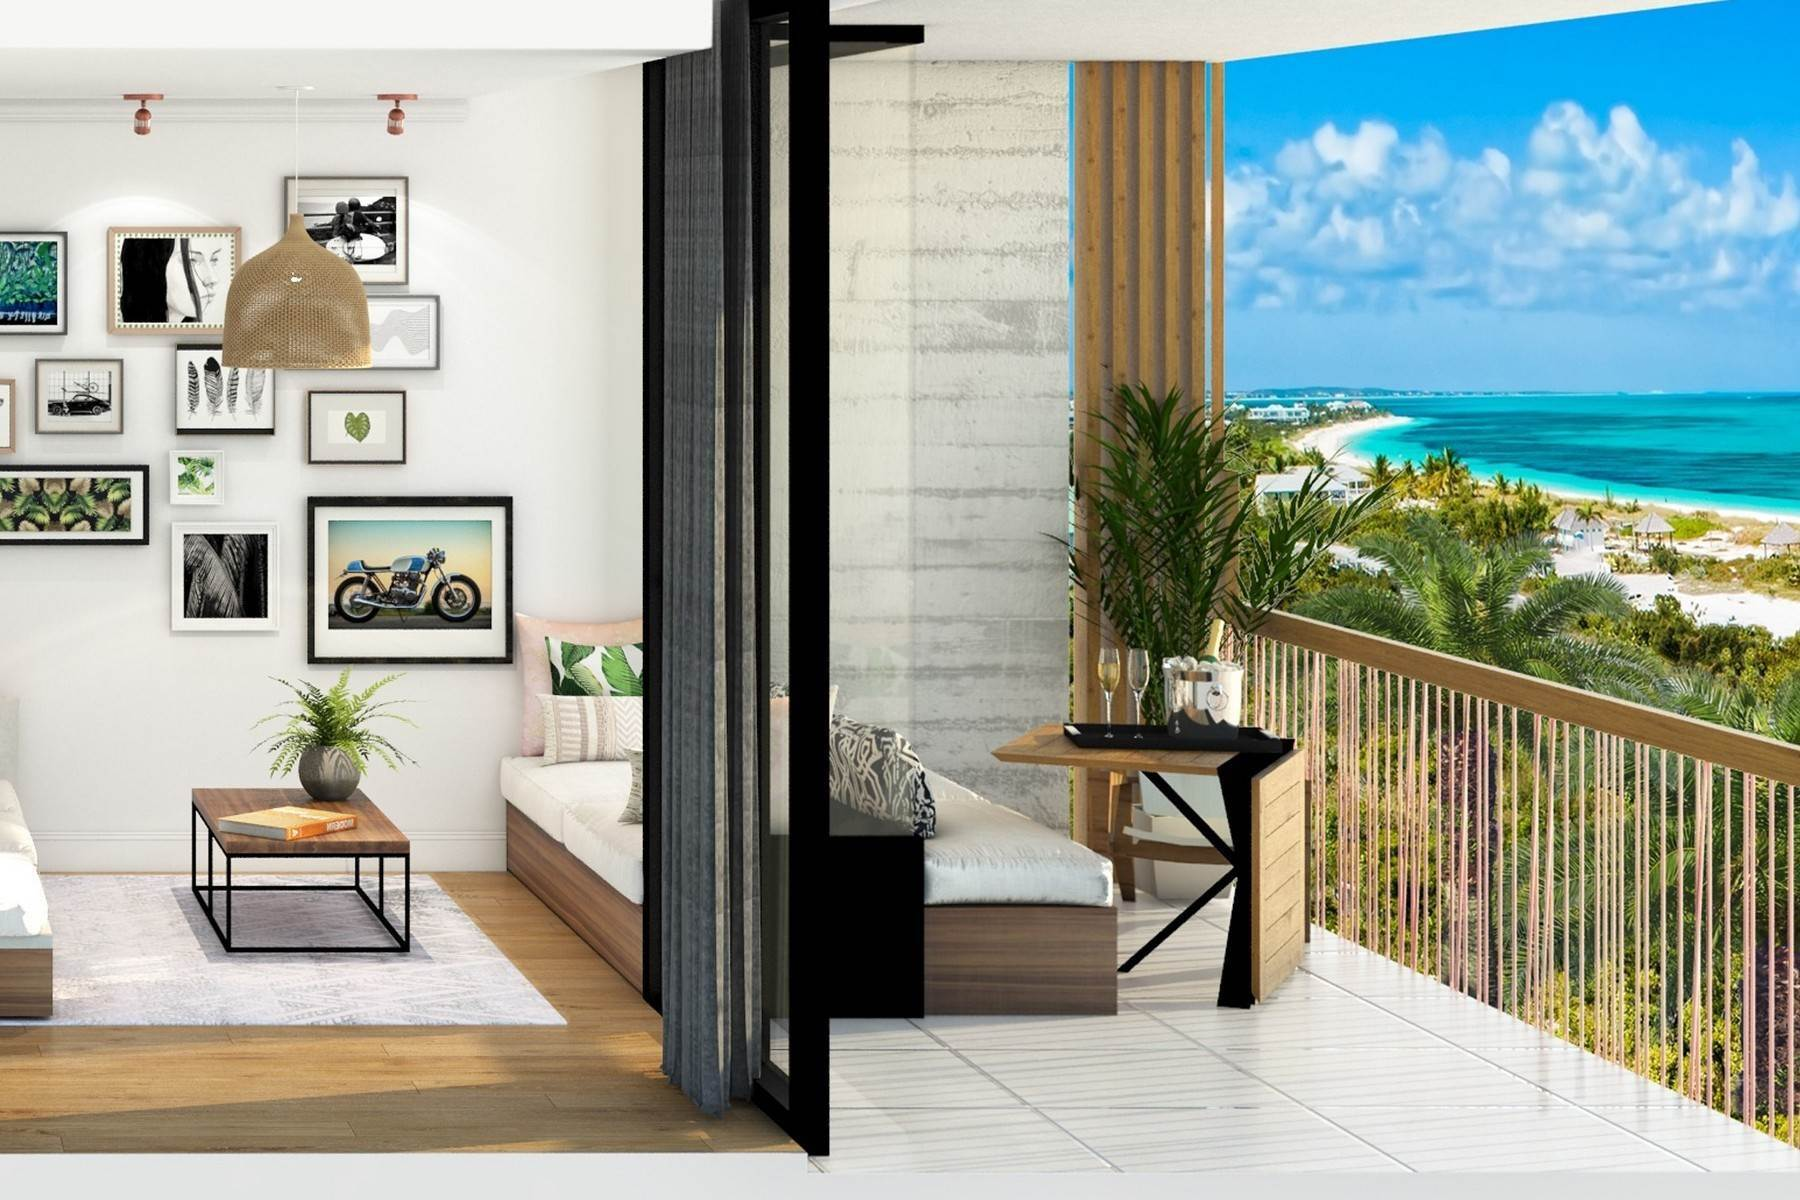 4. Condominiums for Sale at The Bight, Providenciales Turks And Caicos Islands